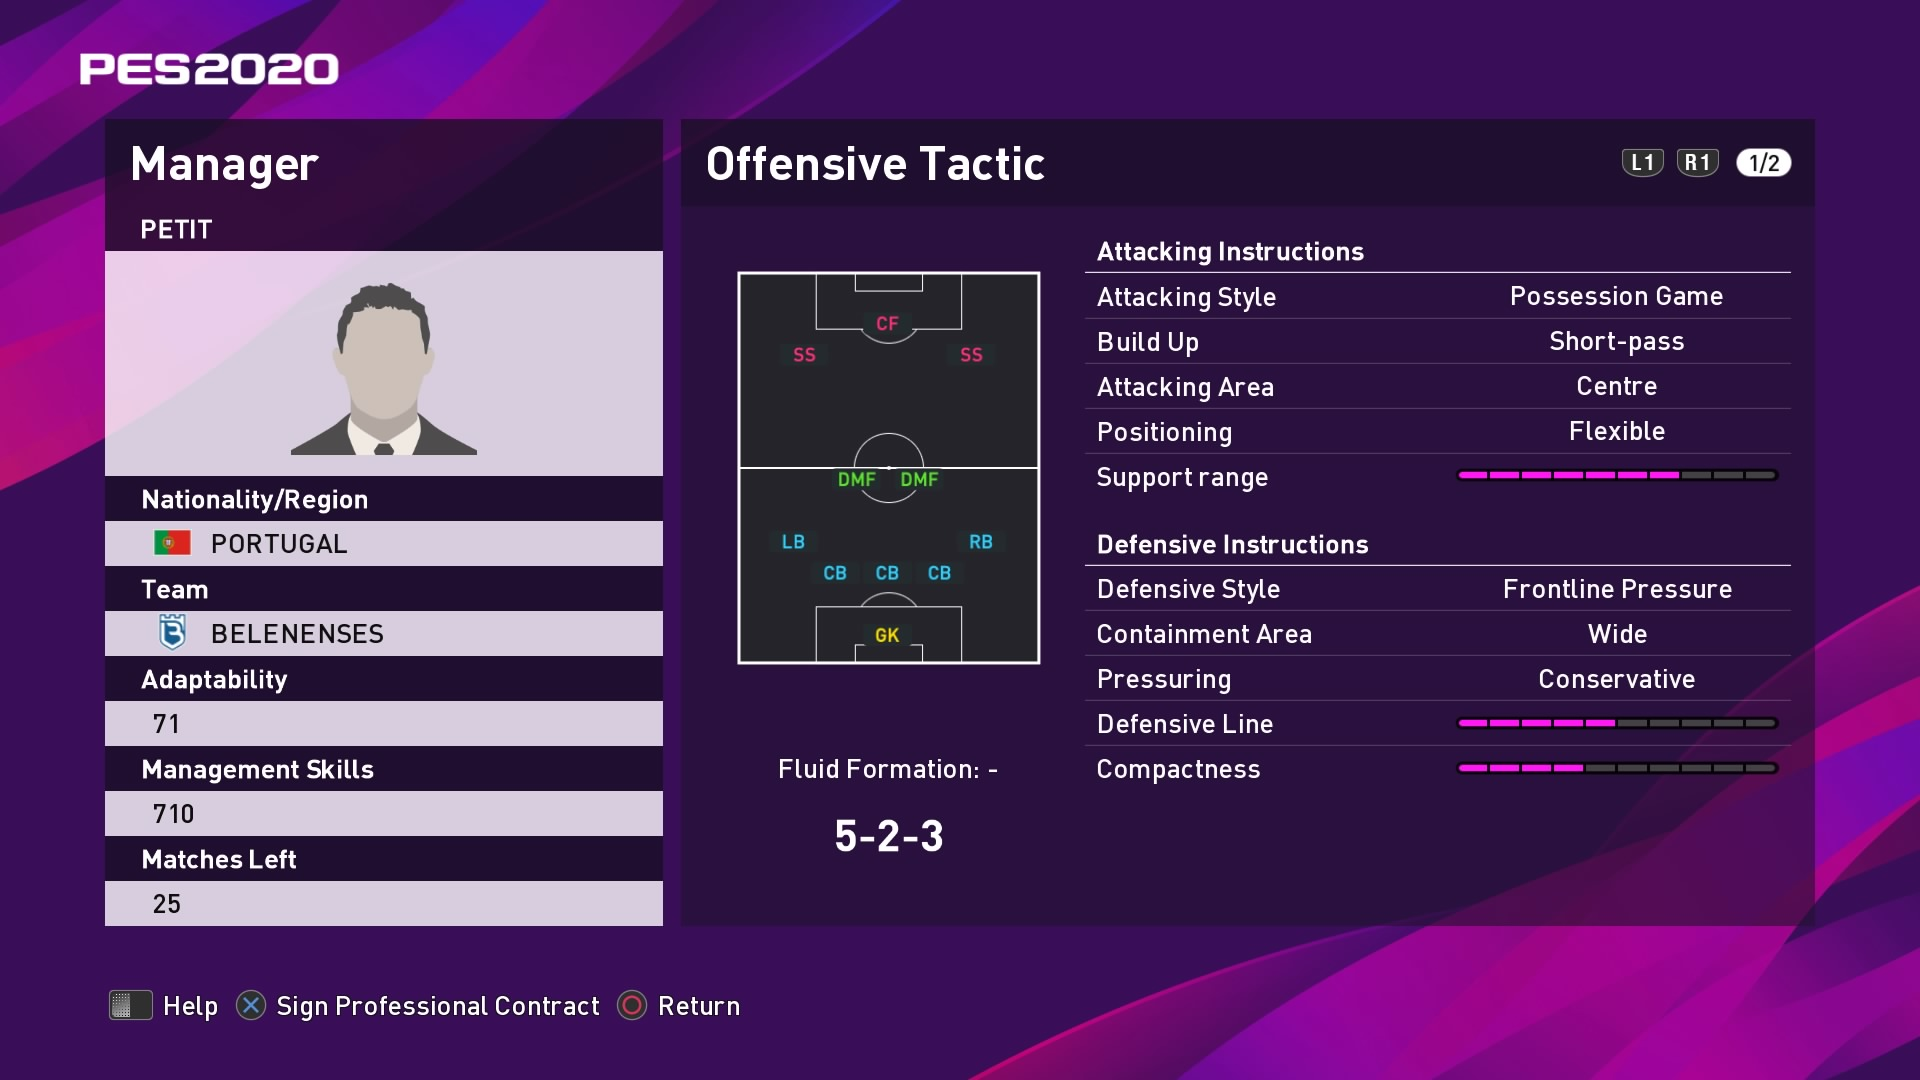 Petit Offensive Tactic in PES 2020 myClub